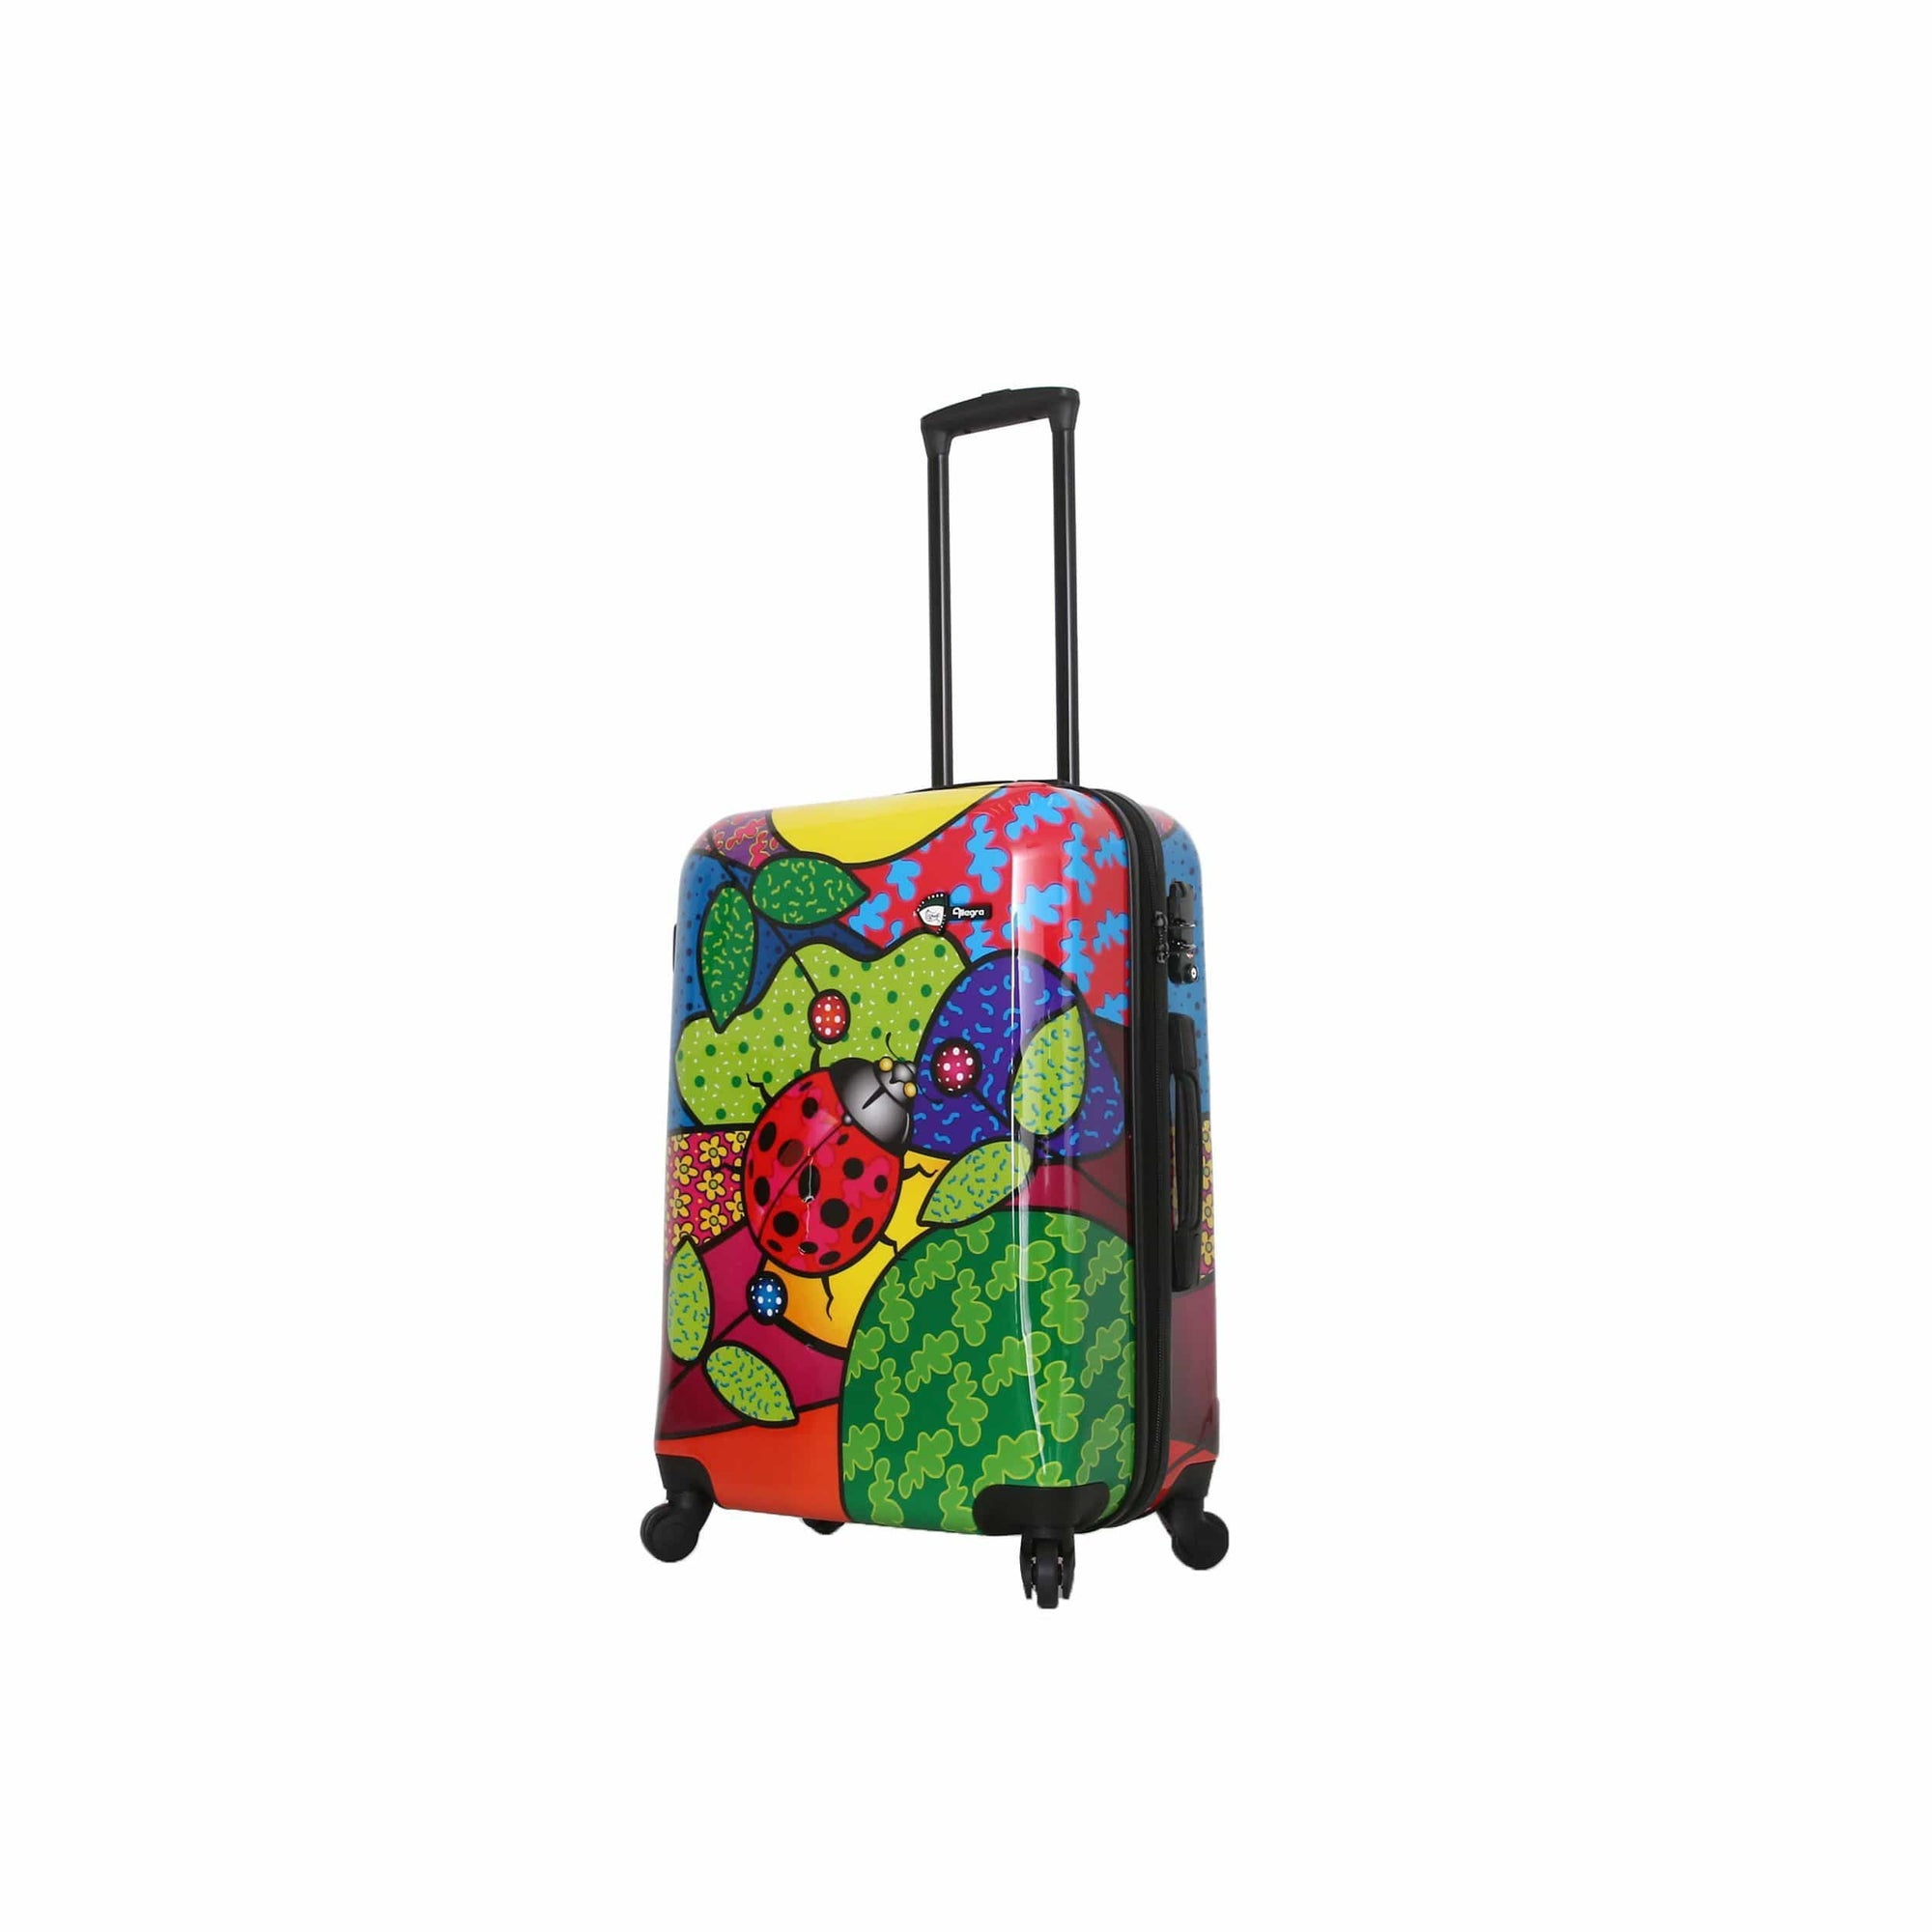 ALLEGRA POP LADYBUG 660MM 4-WHEEL CHECK IN TROLLEY PULLMAN